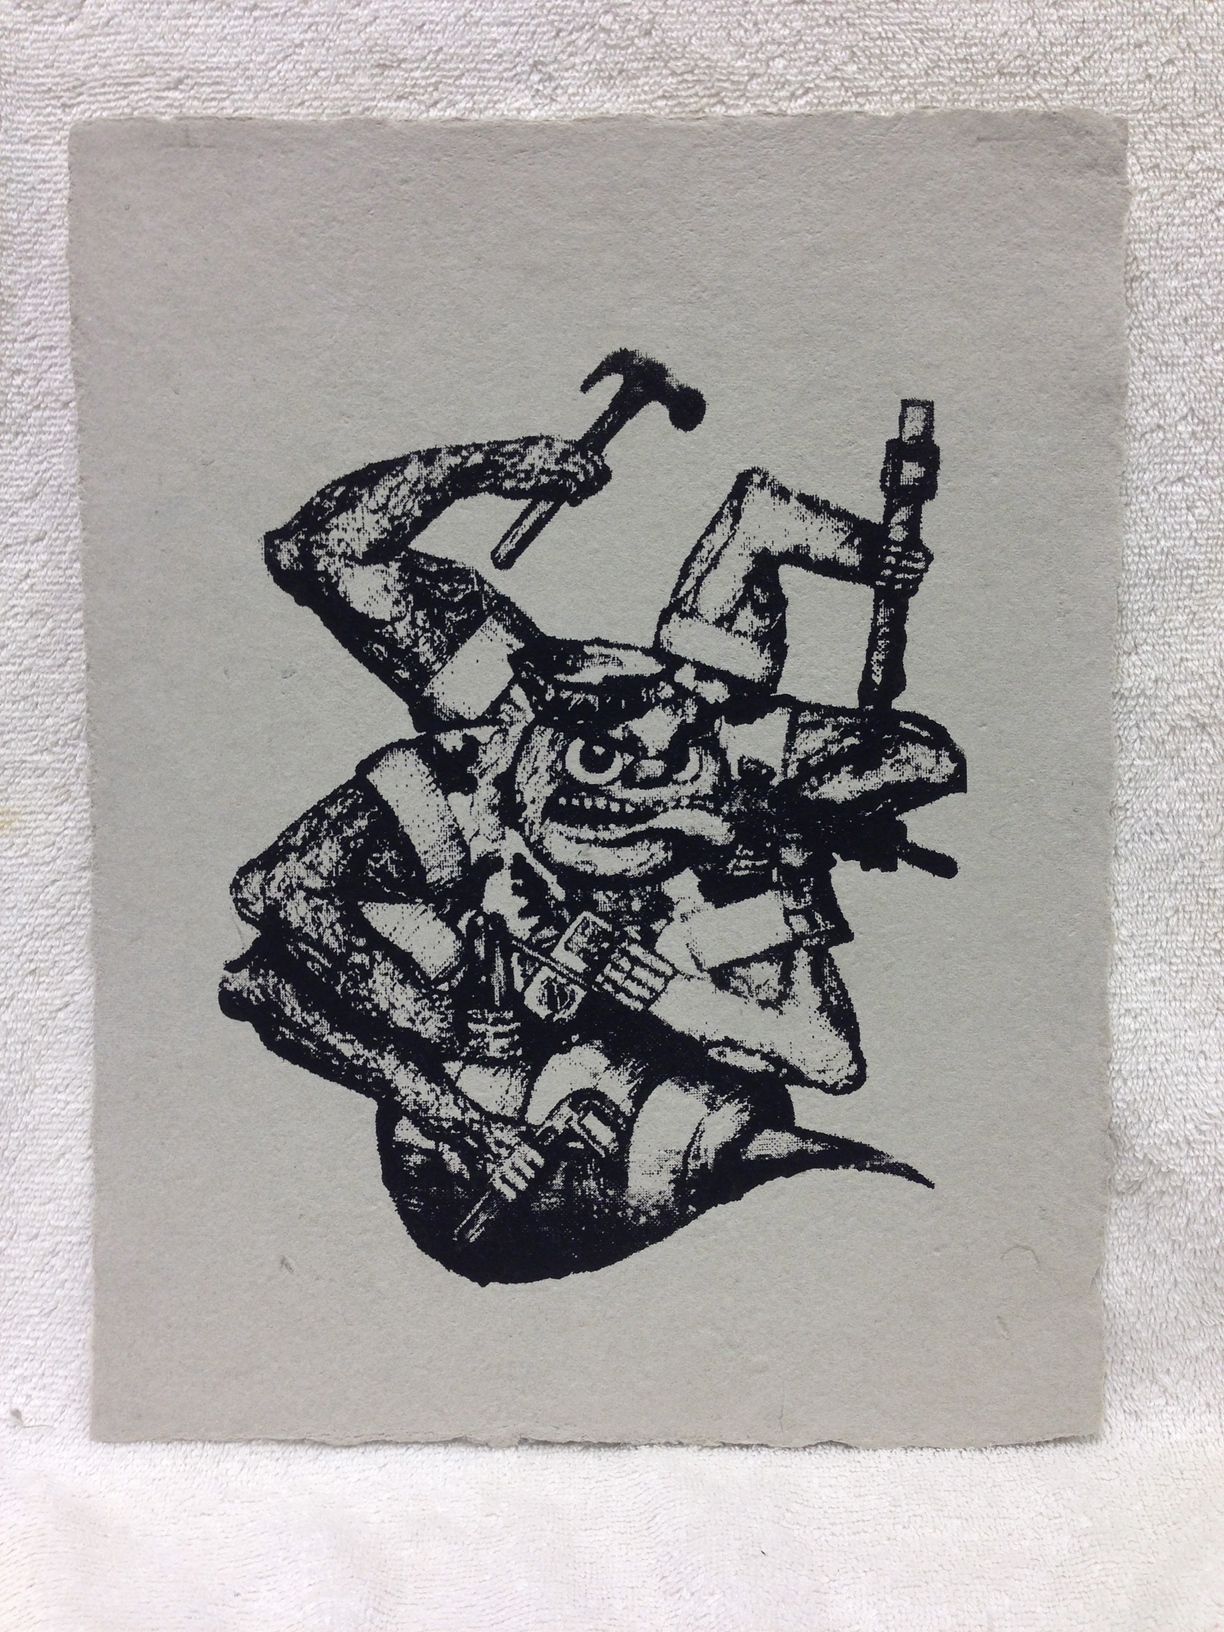 Mike Navy - Iraq _SeaBee_ 2013 Silkscreen on handmade paper made from military uniforms Ft Belvoir Workshop IMG_1017.jpg